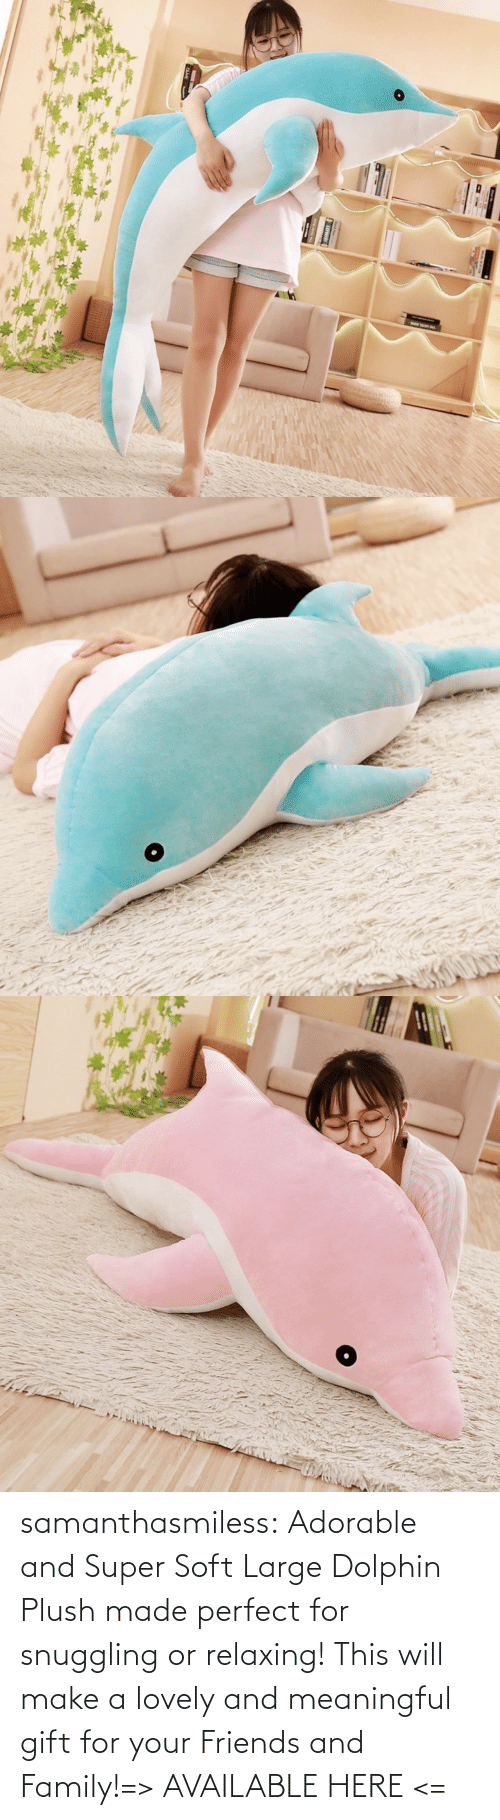 family: samanthasmiless:  Adorable and Super Soft Large Dolphin Plush made perfect for snuggling or relaxing! This will make a lovely and meaningful gift for your Friends and Family!=> AVAILABLE HERE <=